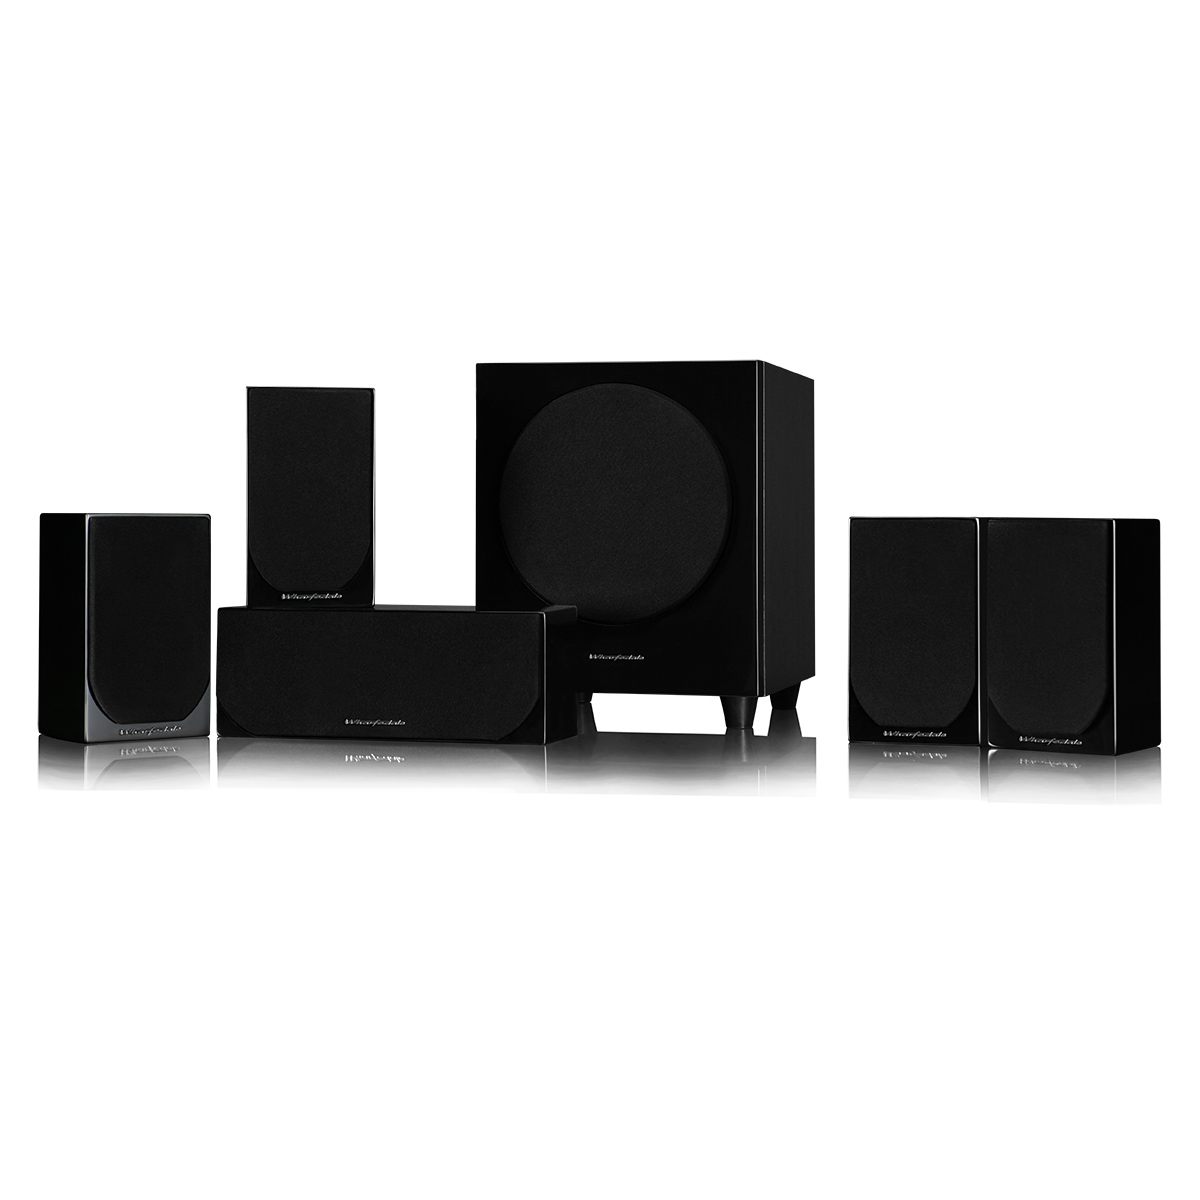 Wharfedale DX-1SE 5.1 sound system Black